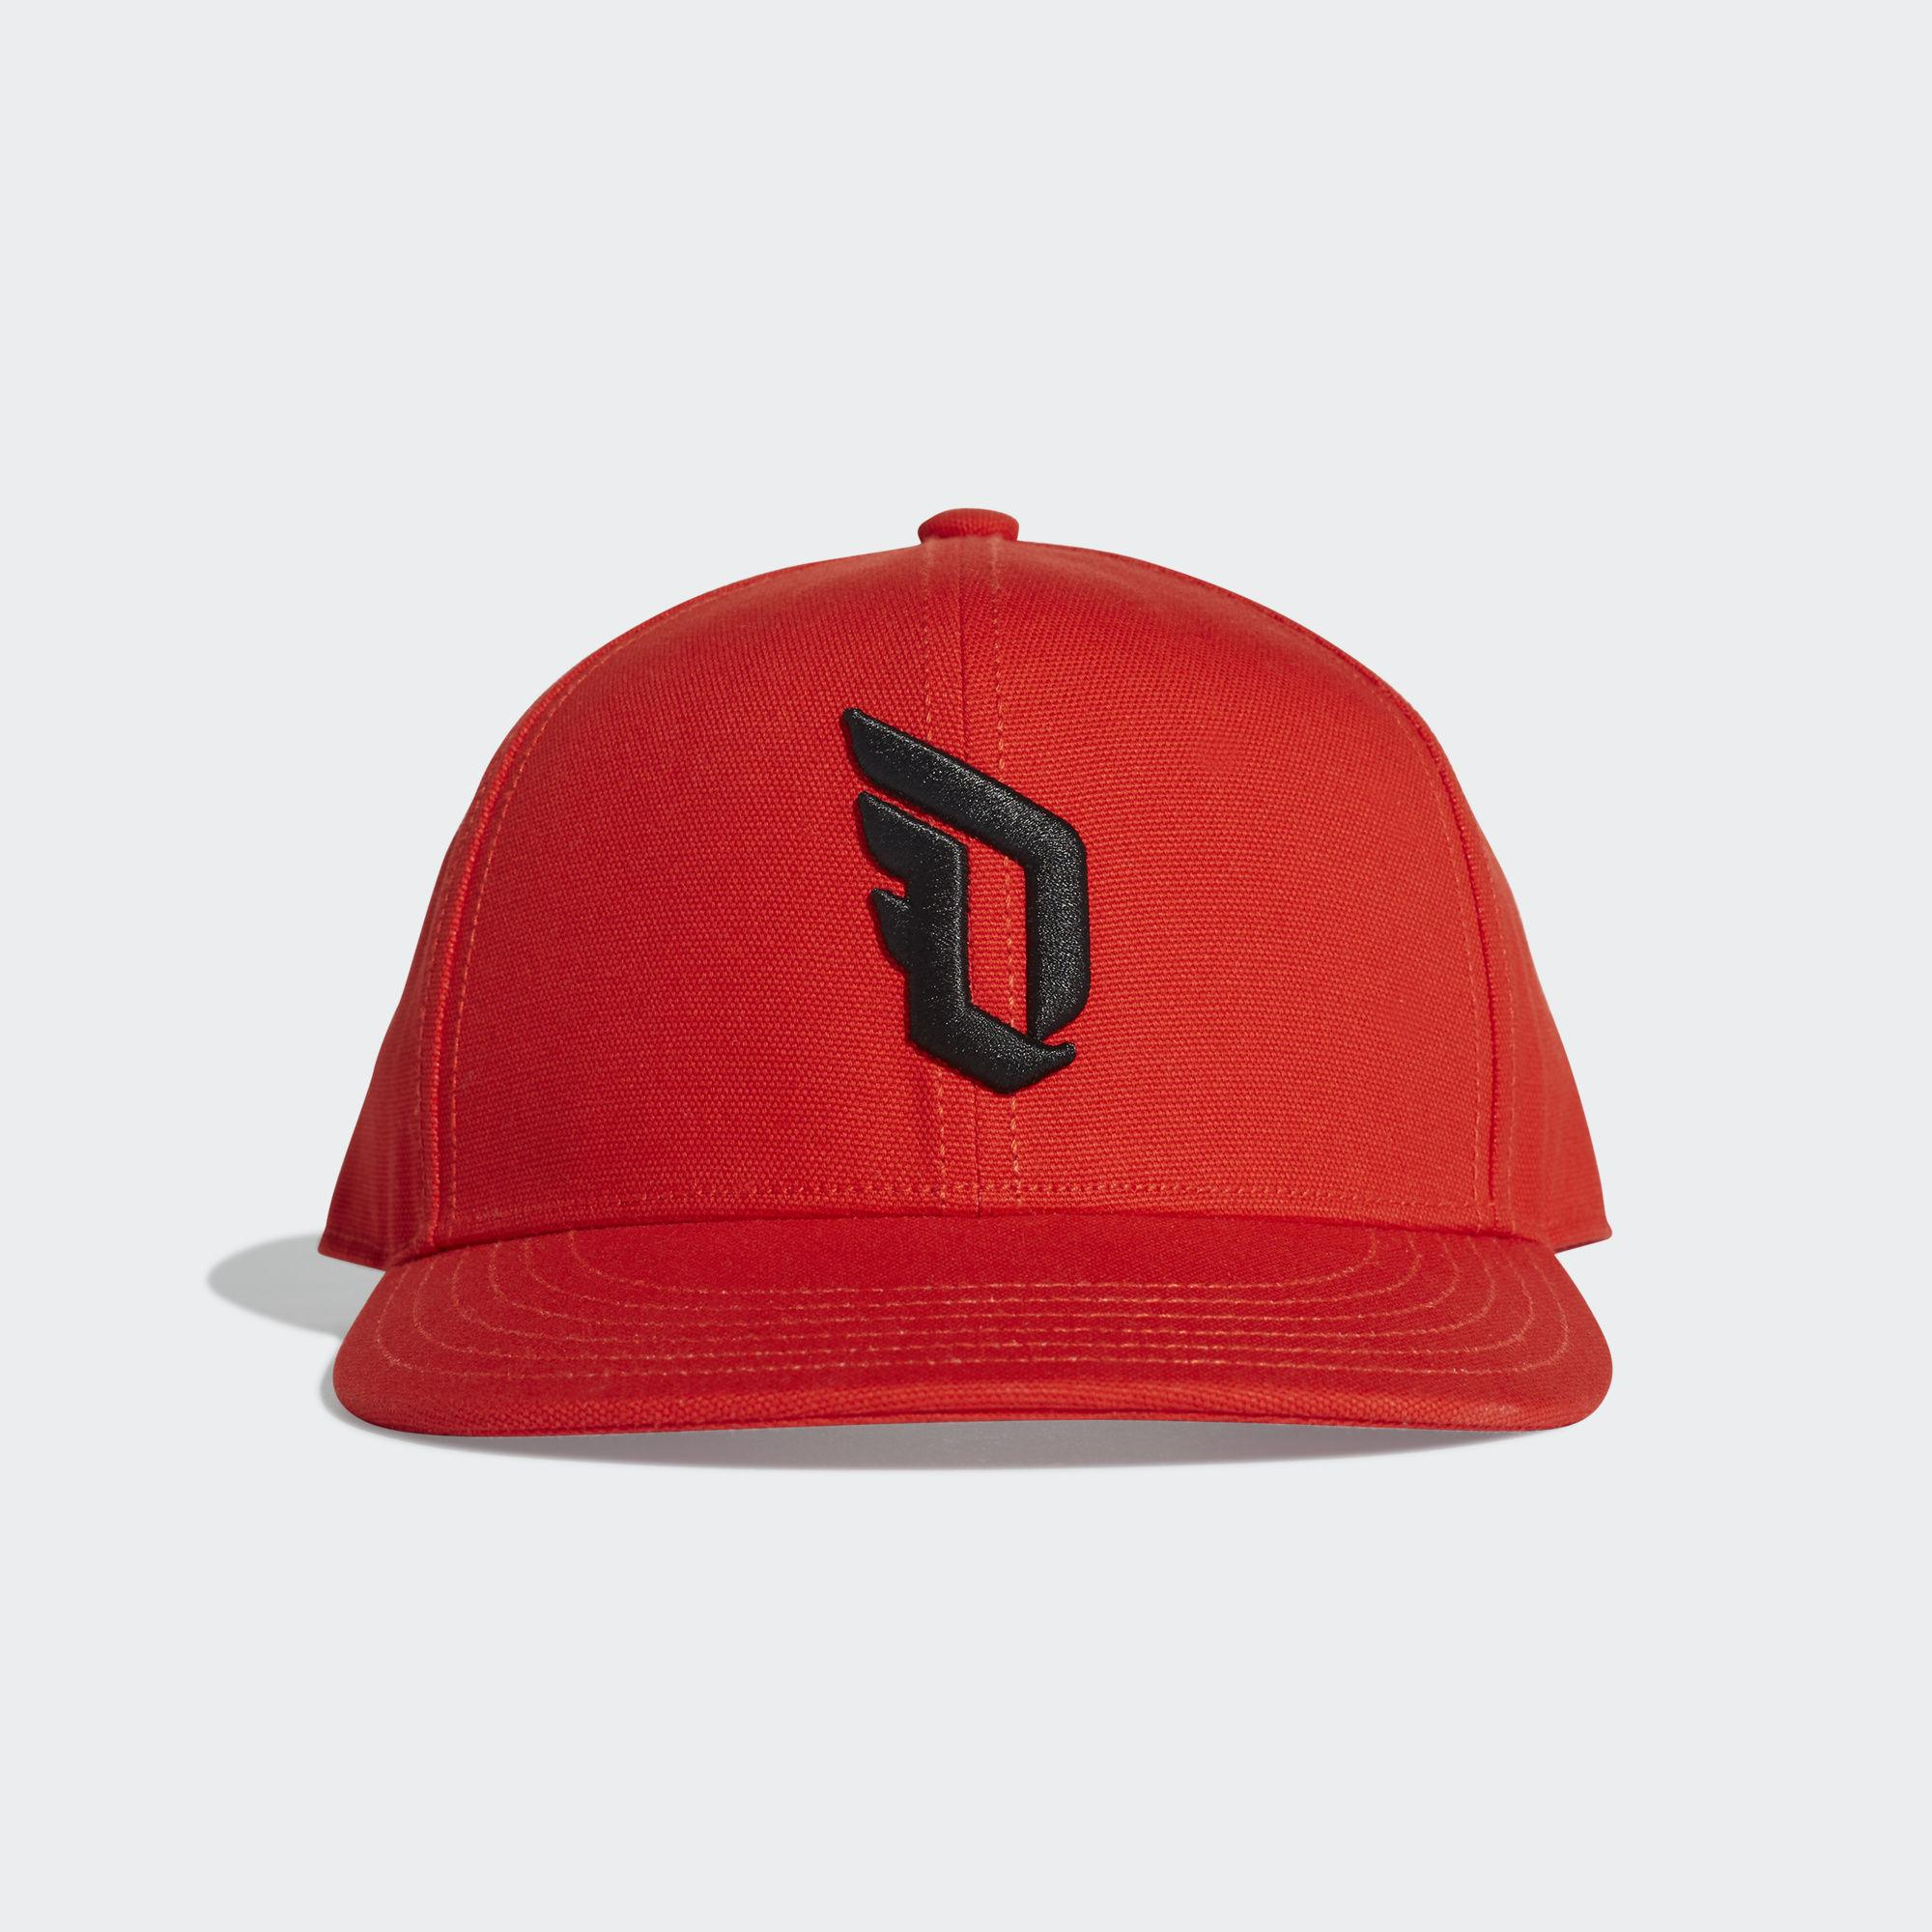 93494992bd2 adidas Dame Cap in Red for Men - Lyst